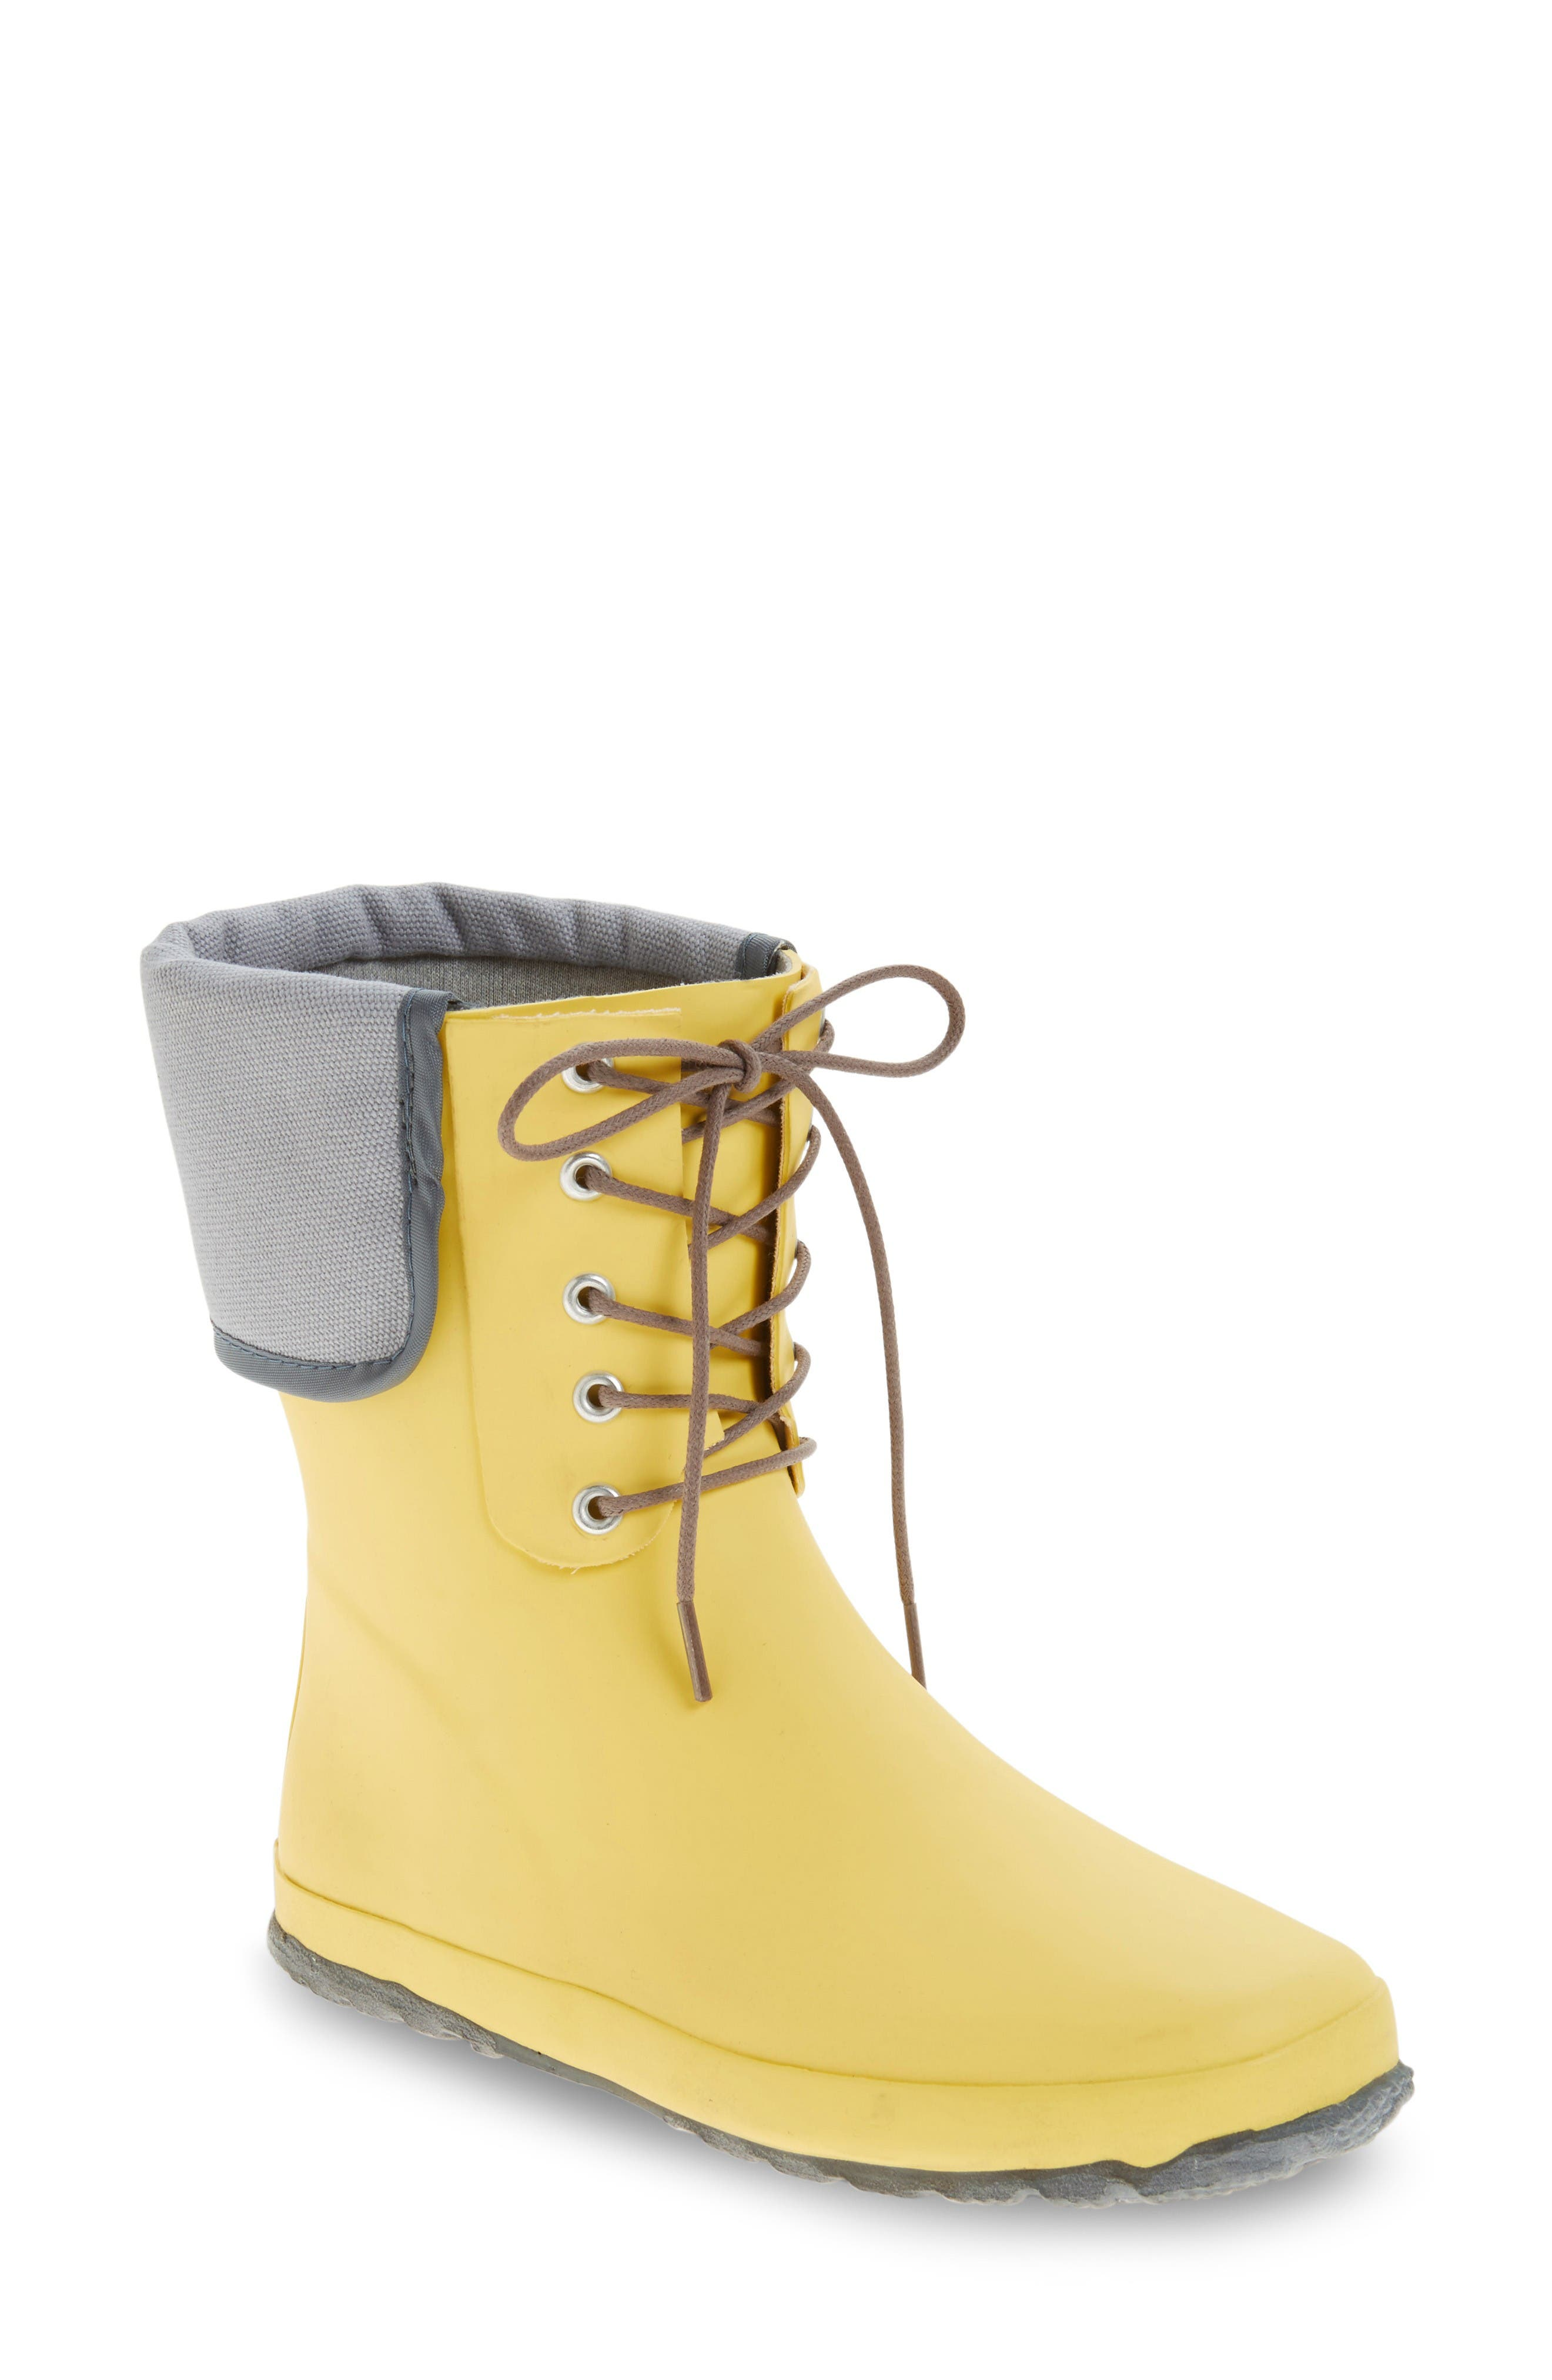 Alternate Image 1 Selected - däv Lace-Up Mid Weatherproof Boot (Women)